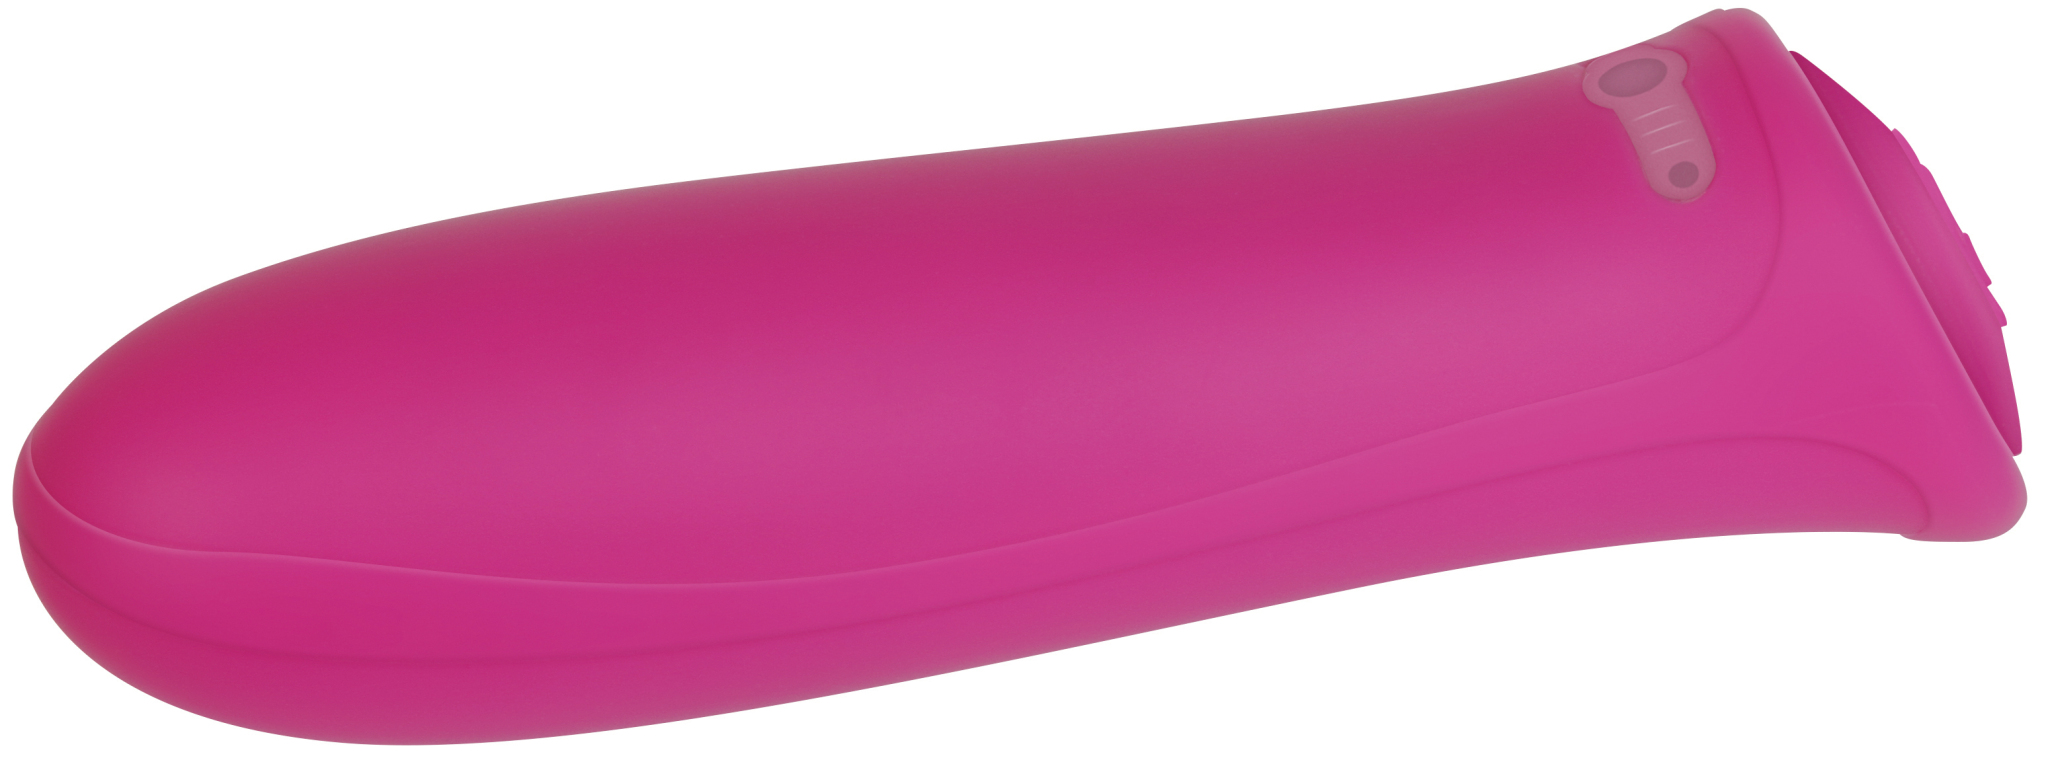 PRETTY-IN-PINK-SILICONE-RECHARGEABLE-II.jpg